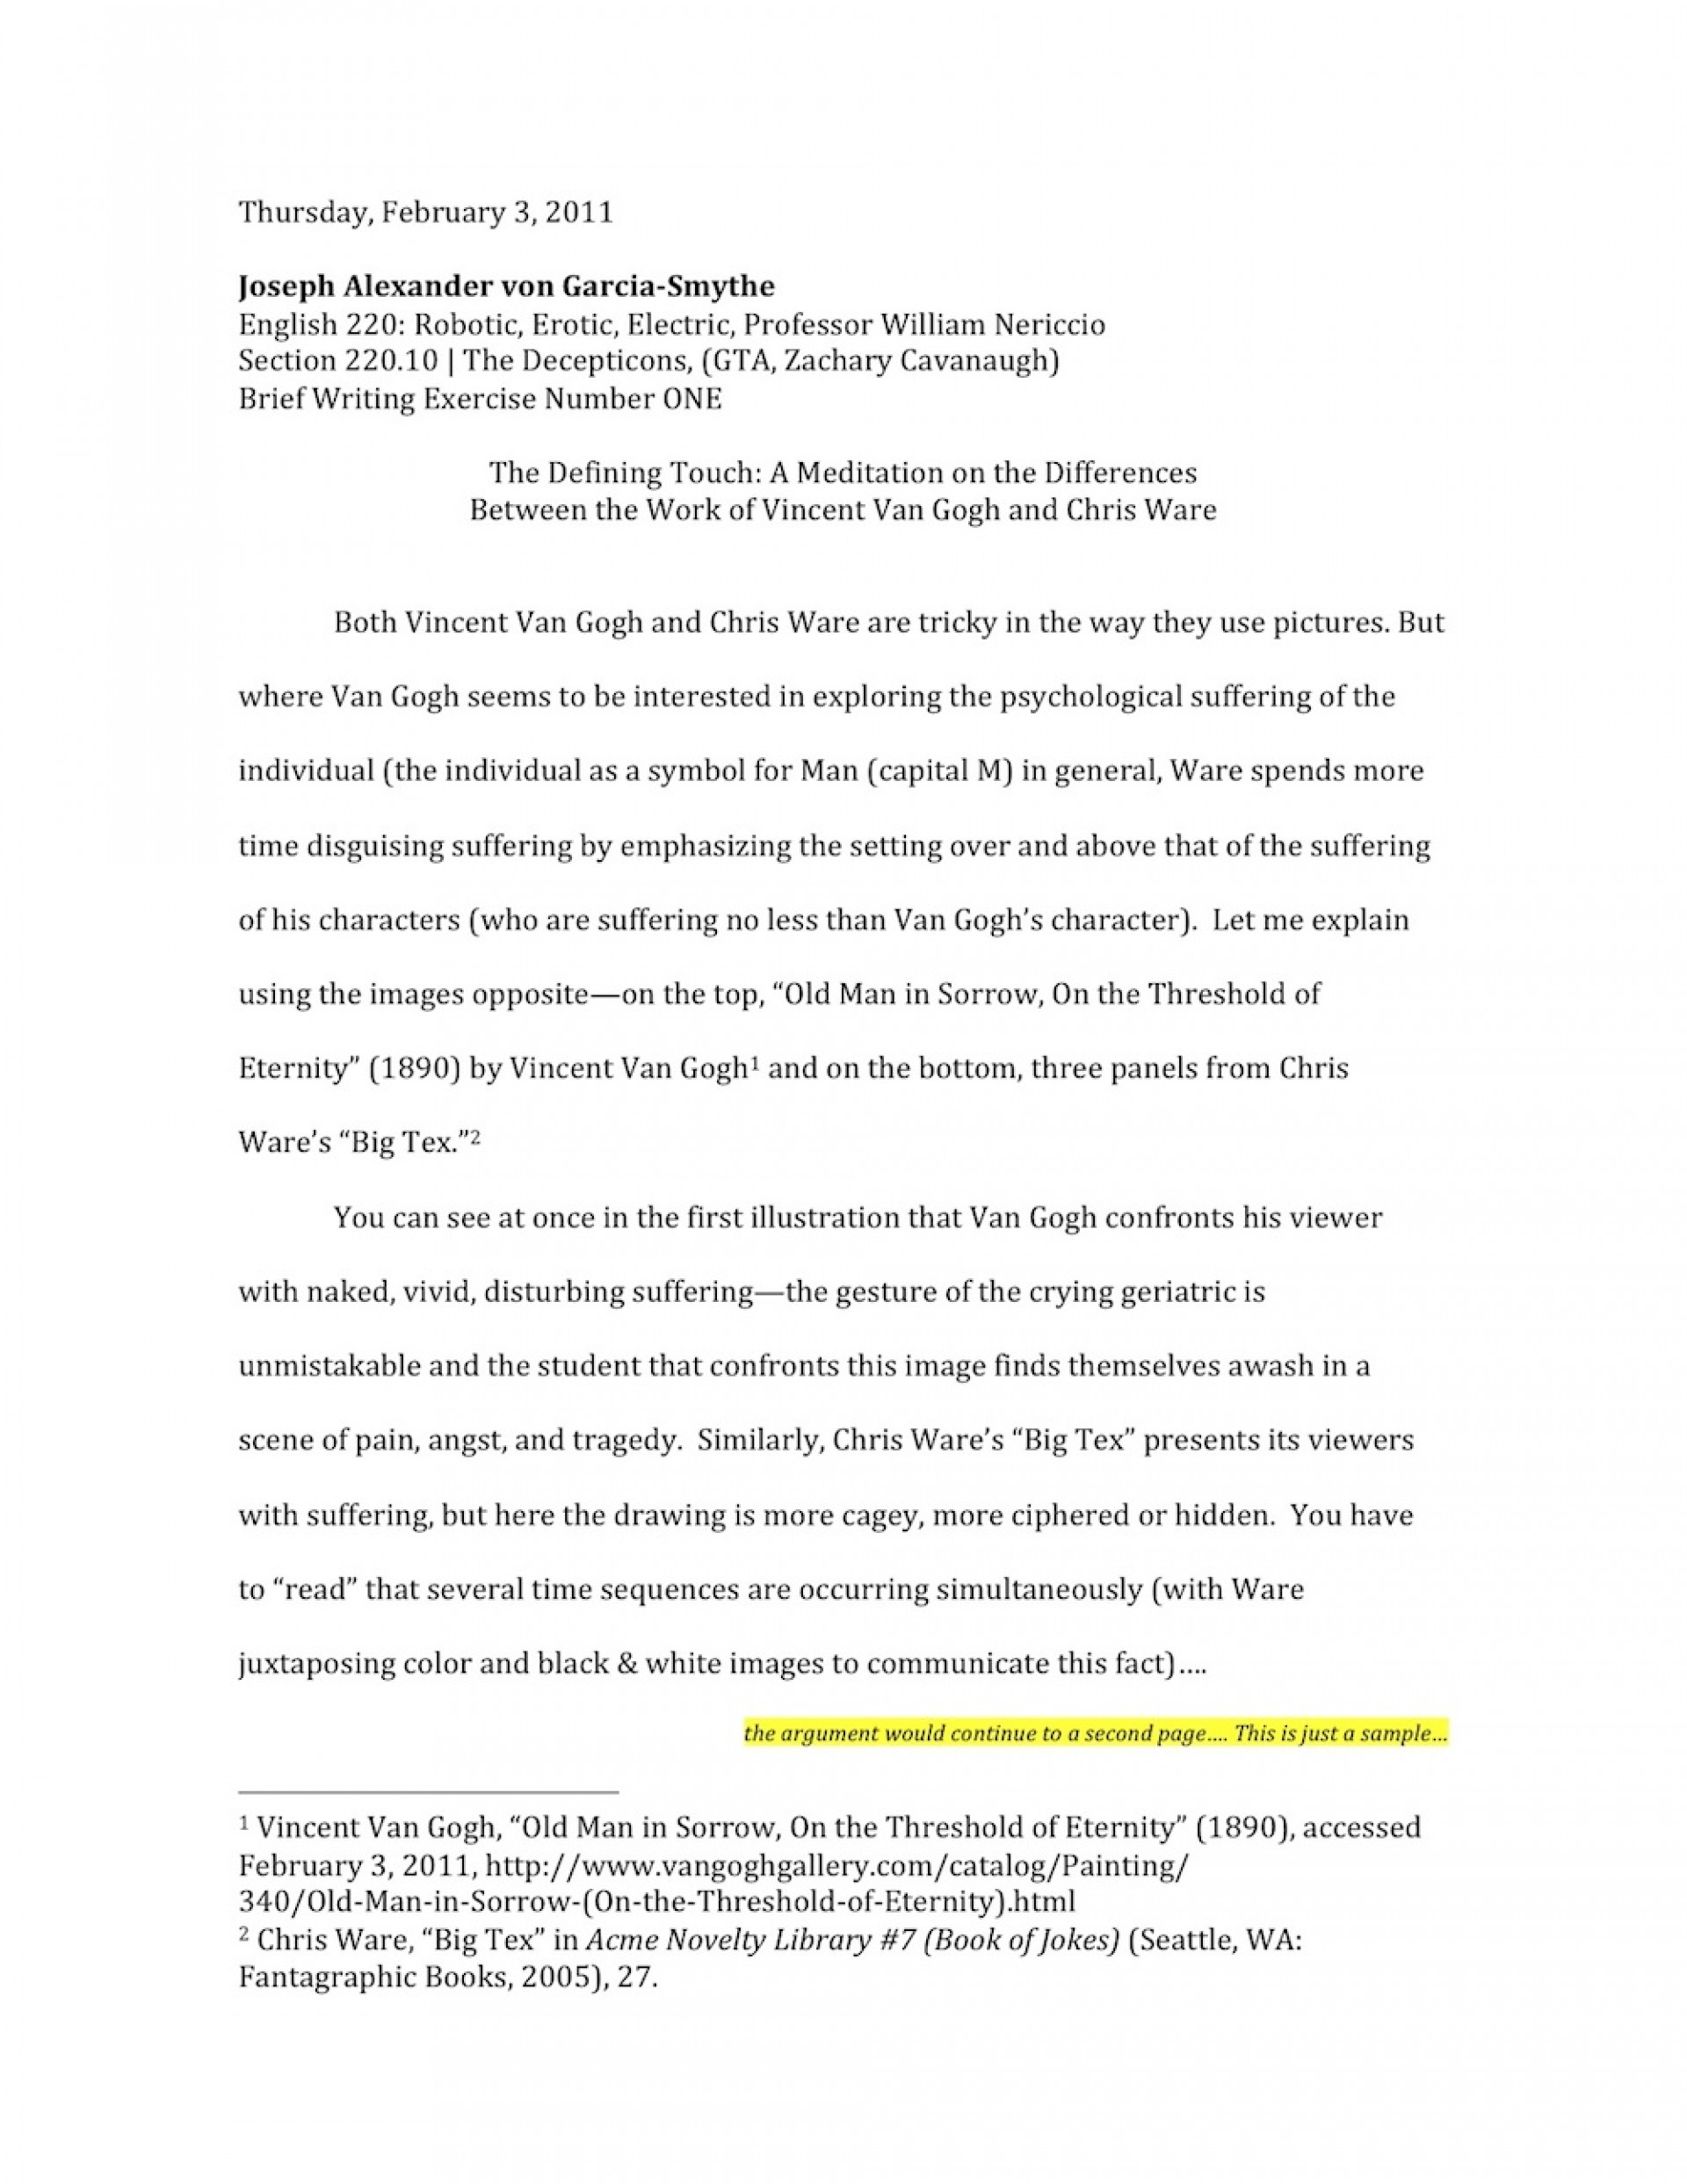 009 Essay Example Nericcio Sampleessay1 Unique Autobiography For Highschool Students Pdf Bibliography Examples 1920